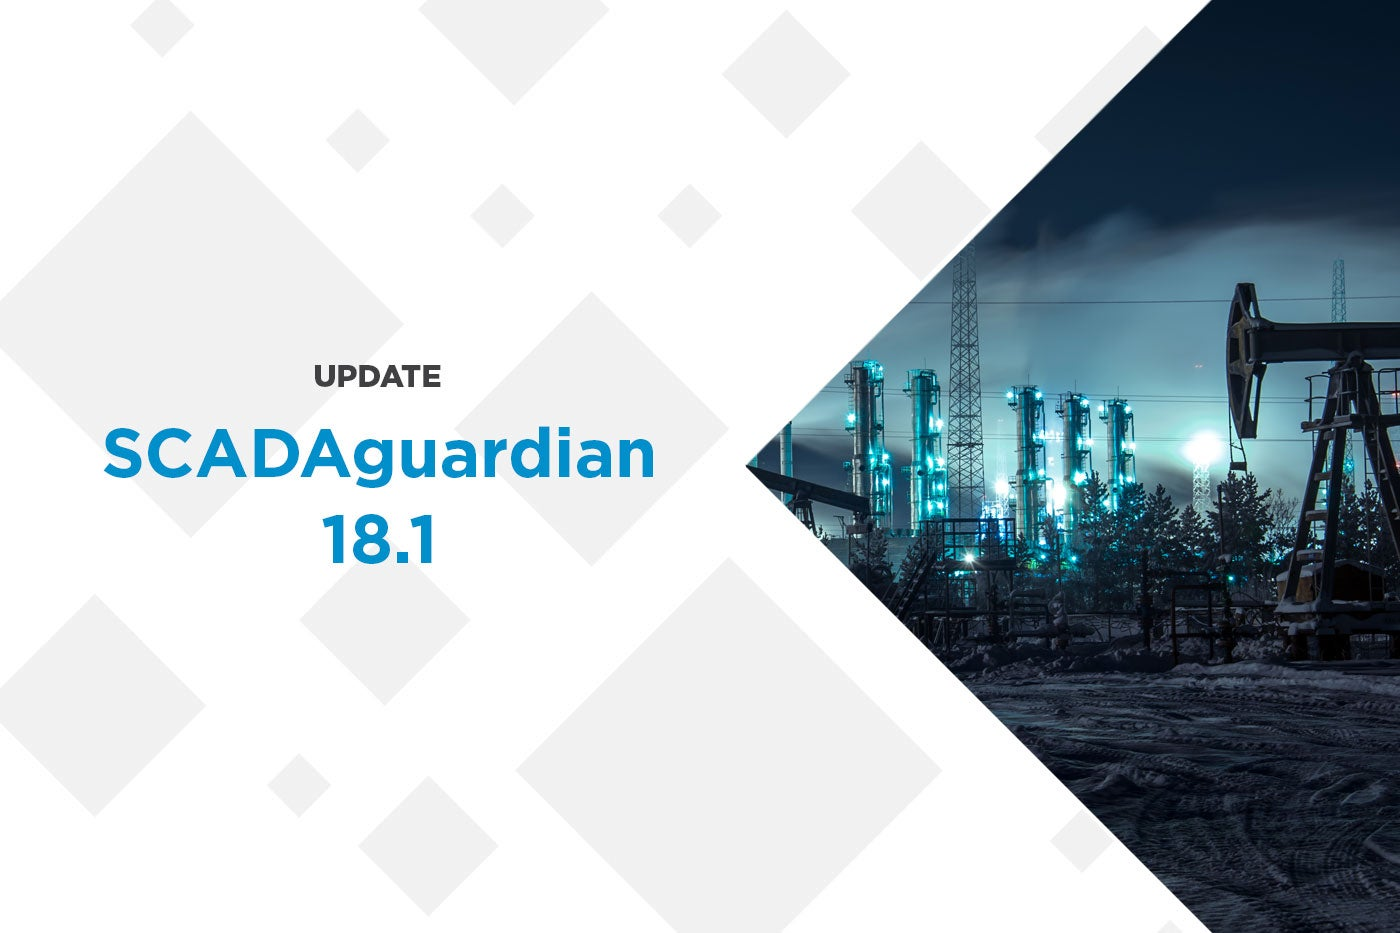 SCADAguardian Update Enhances OT Visibility & Threat Detection